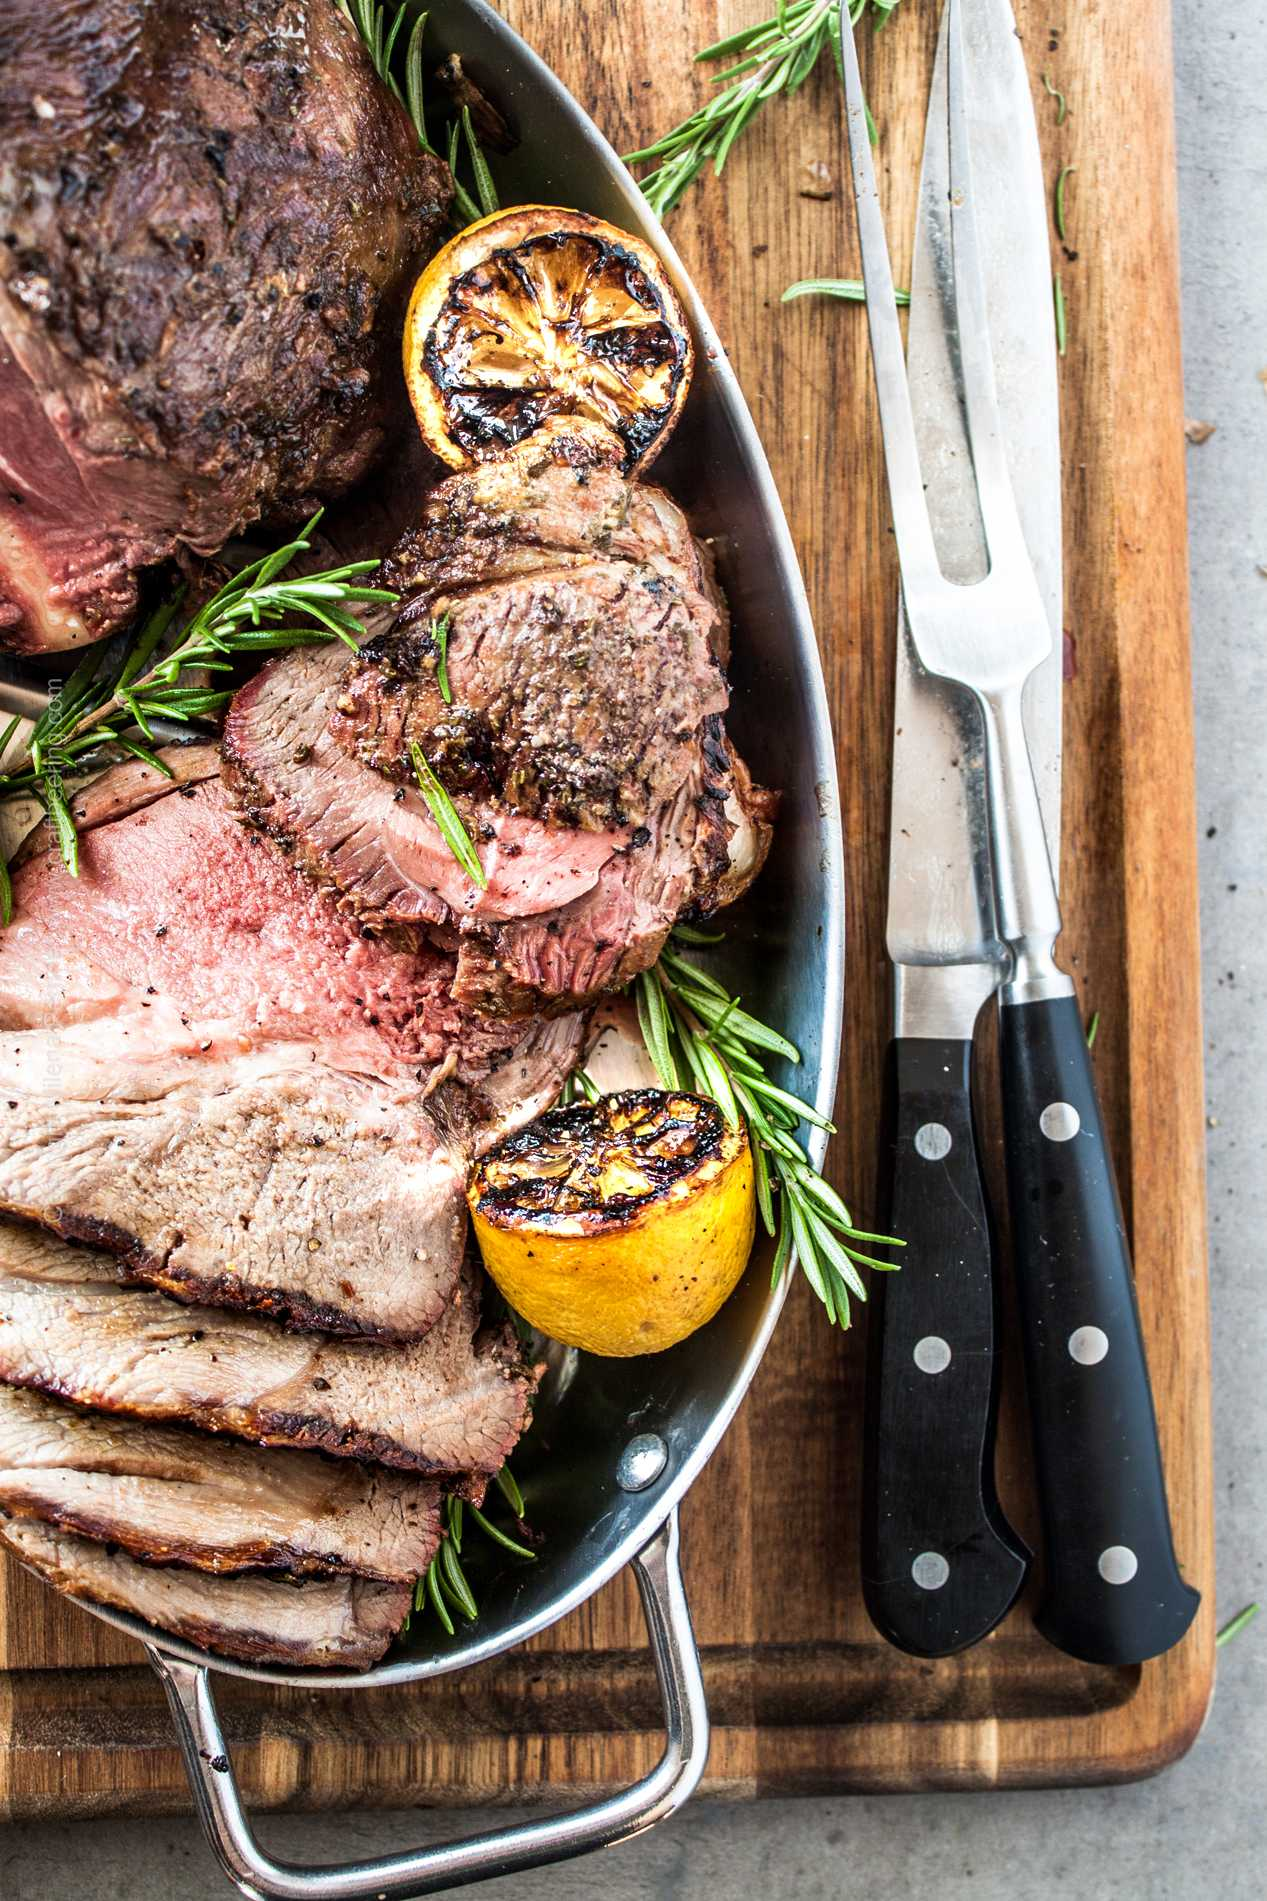 Juicy grilled leg of lamb garnished with rosemary, grilled lemons and garlic.